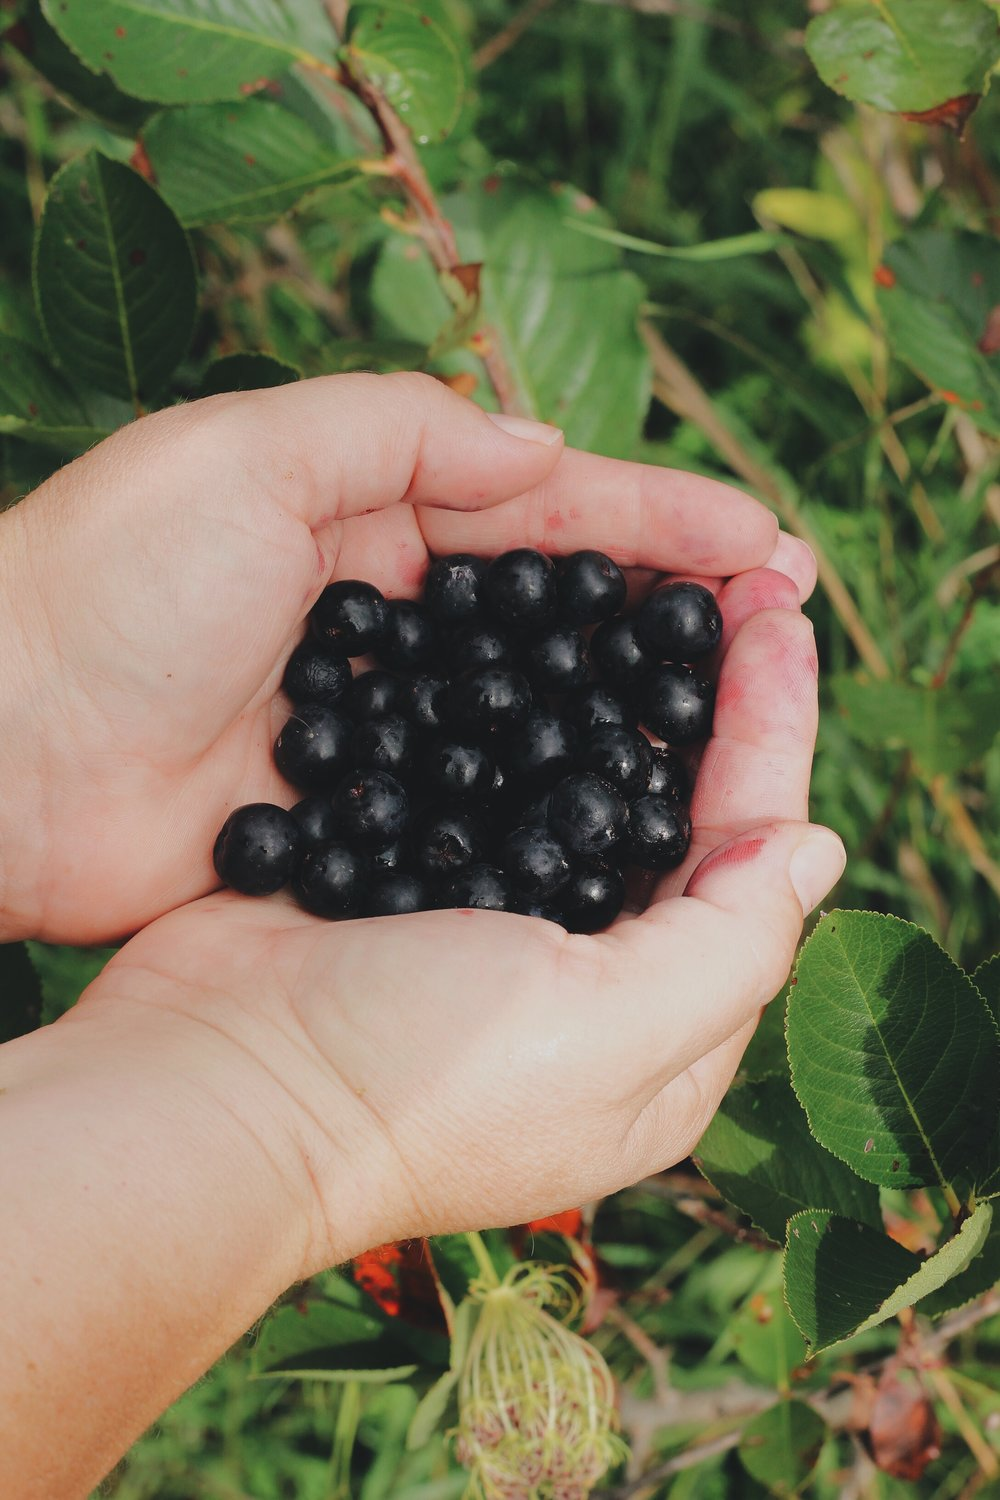 Forum on this topic: Introducing the aronia berry, introducing-the-aronia-berry/